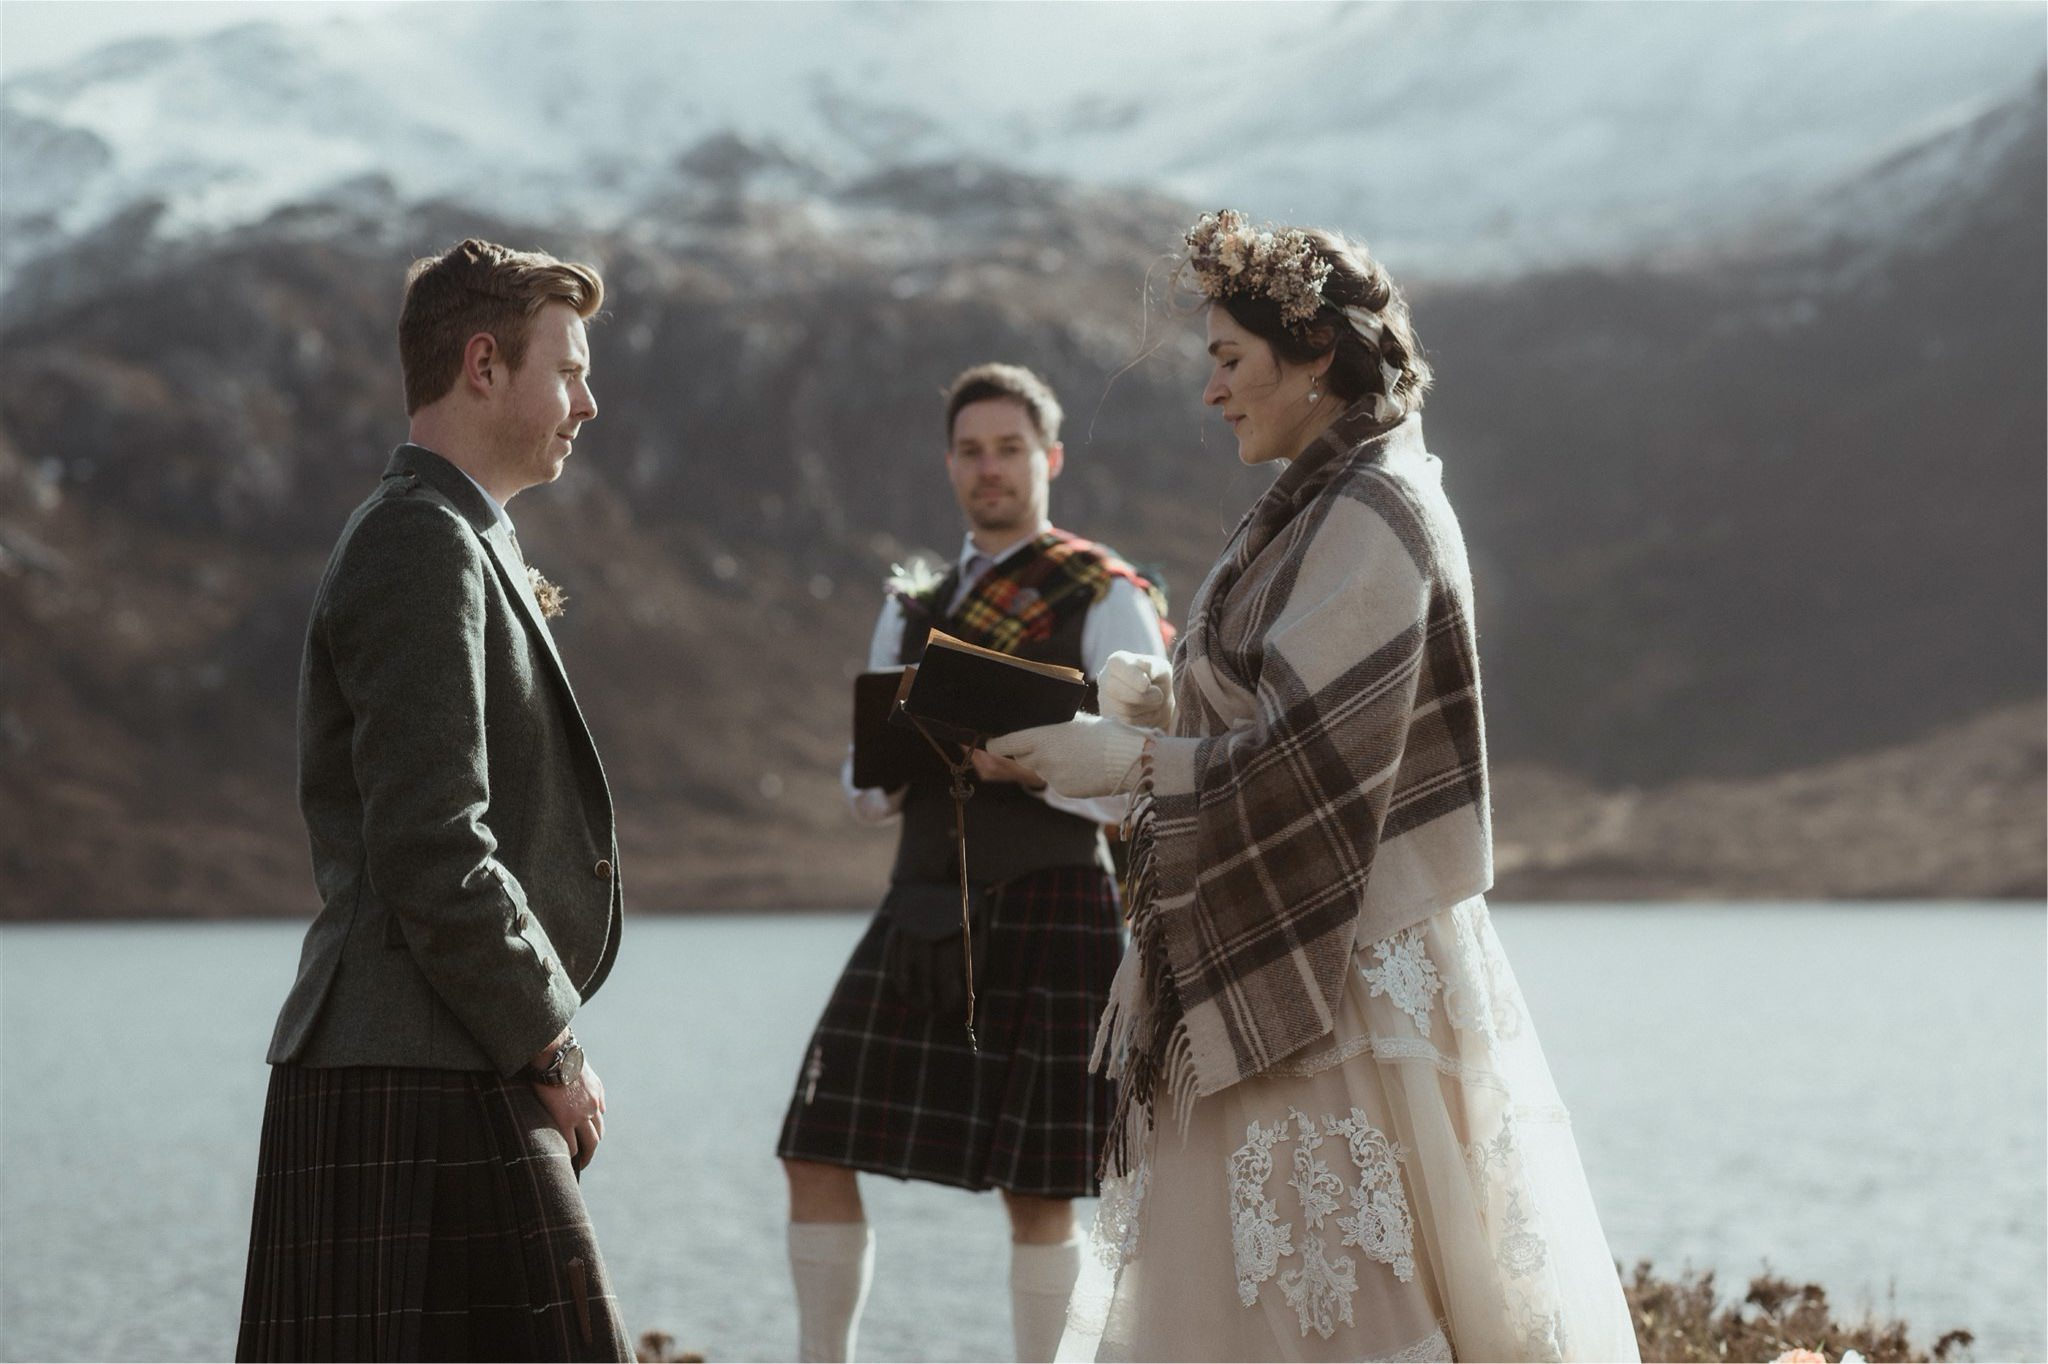 Bride reading vows to her groom during an elopement wedding in Assynt, Scotland